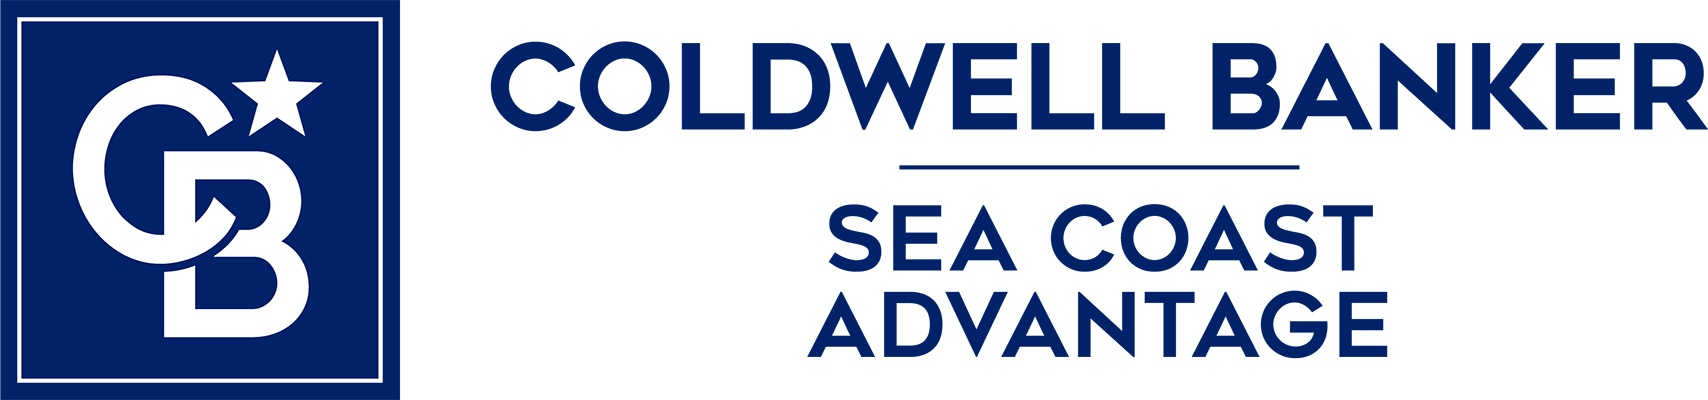 Cynthia Strickland - Coldwell Banker Sea Coast Advantage Realty